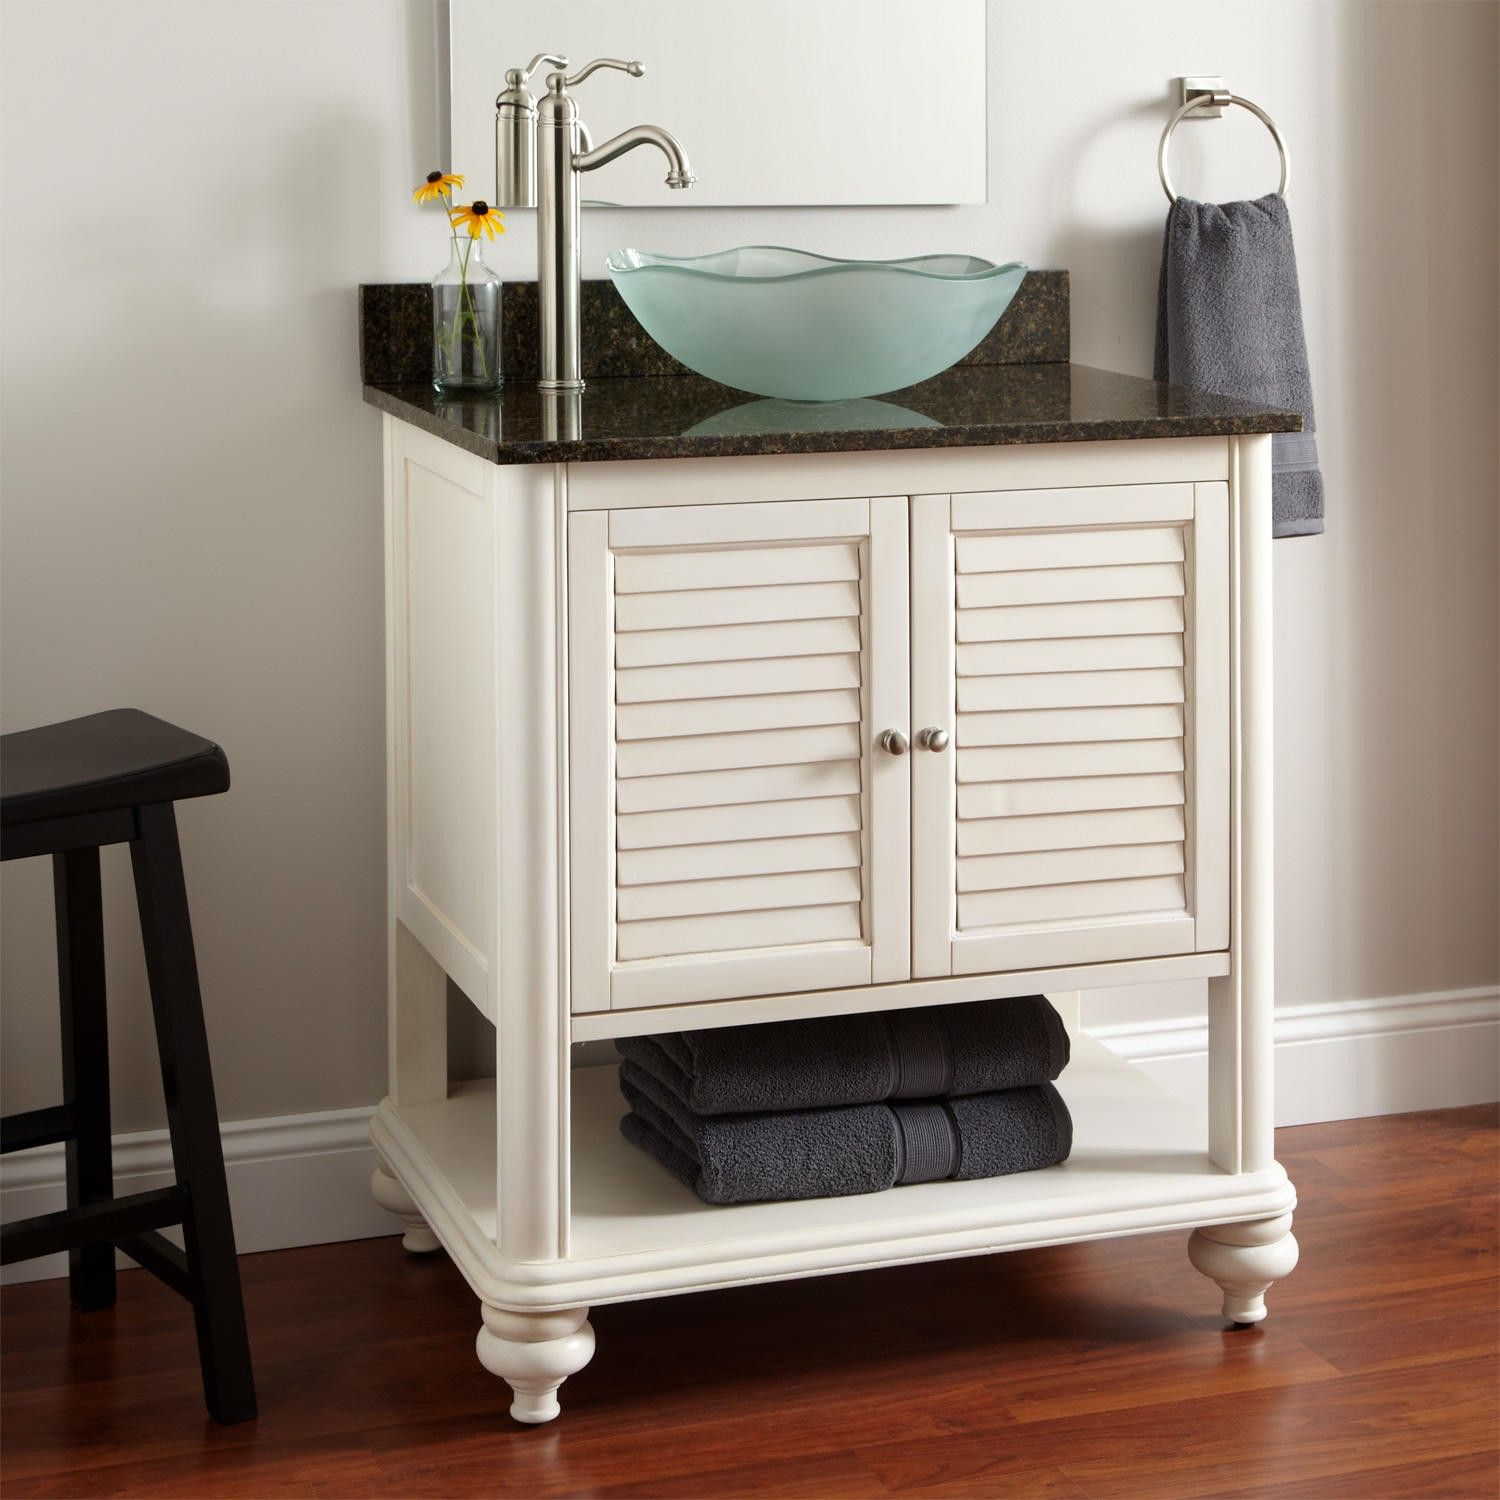 Tropica Vessel Sink Vanity Antique White Linda Tow - Antique bathroom vanity with vessel sink